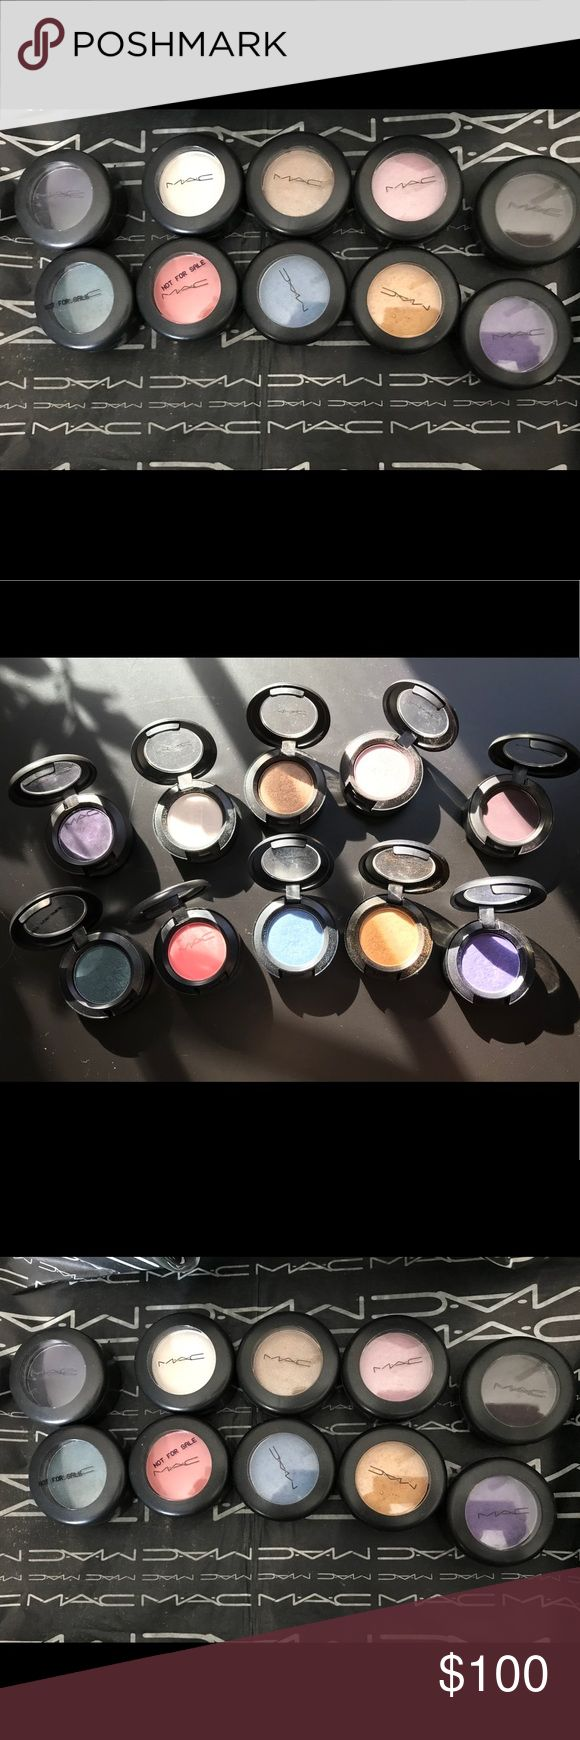 AUTHENTIC MAC COSMETICS EYESHADOW LOT (10). 😍 AUTHENTIC MAC COSMETICS LOT OF 10 SINGLE EYESHADOWS FROM MY COLLECTION. SEE NAMES ON 2nd PHOTO. THESE ARE FROM DIFFERENT COLLECTION. IF THE LID SAYS NOT FOR RESALE ITS BECAUSE THE COMPANY GAVE IT AS GRATIS TO THEIR EMPLOYEE. THESE HAVE BEEN SWATCHED 1X WITH A CLEAN SANITIZED MAC MAKE UP BRUSH. NO LOW BALL OFFERS. I THANK YOU FOR YOUR CONSIDERATION. FEEL FREE TO ASK ME ANY QUESTIONS. (IM NOT SEPARATING FOR PRIVATE SALES) MAC Cosmetics Makeup…